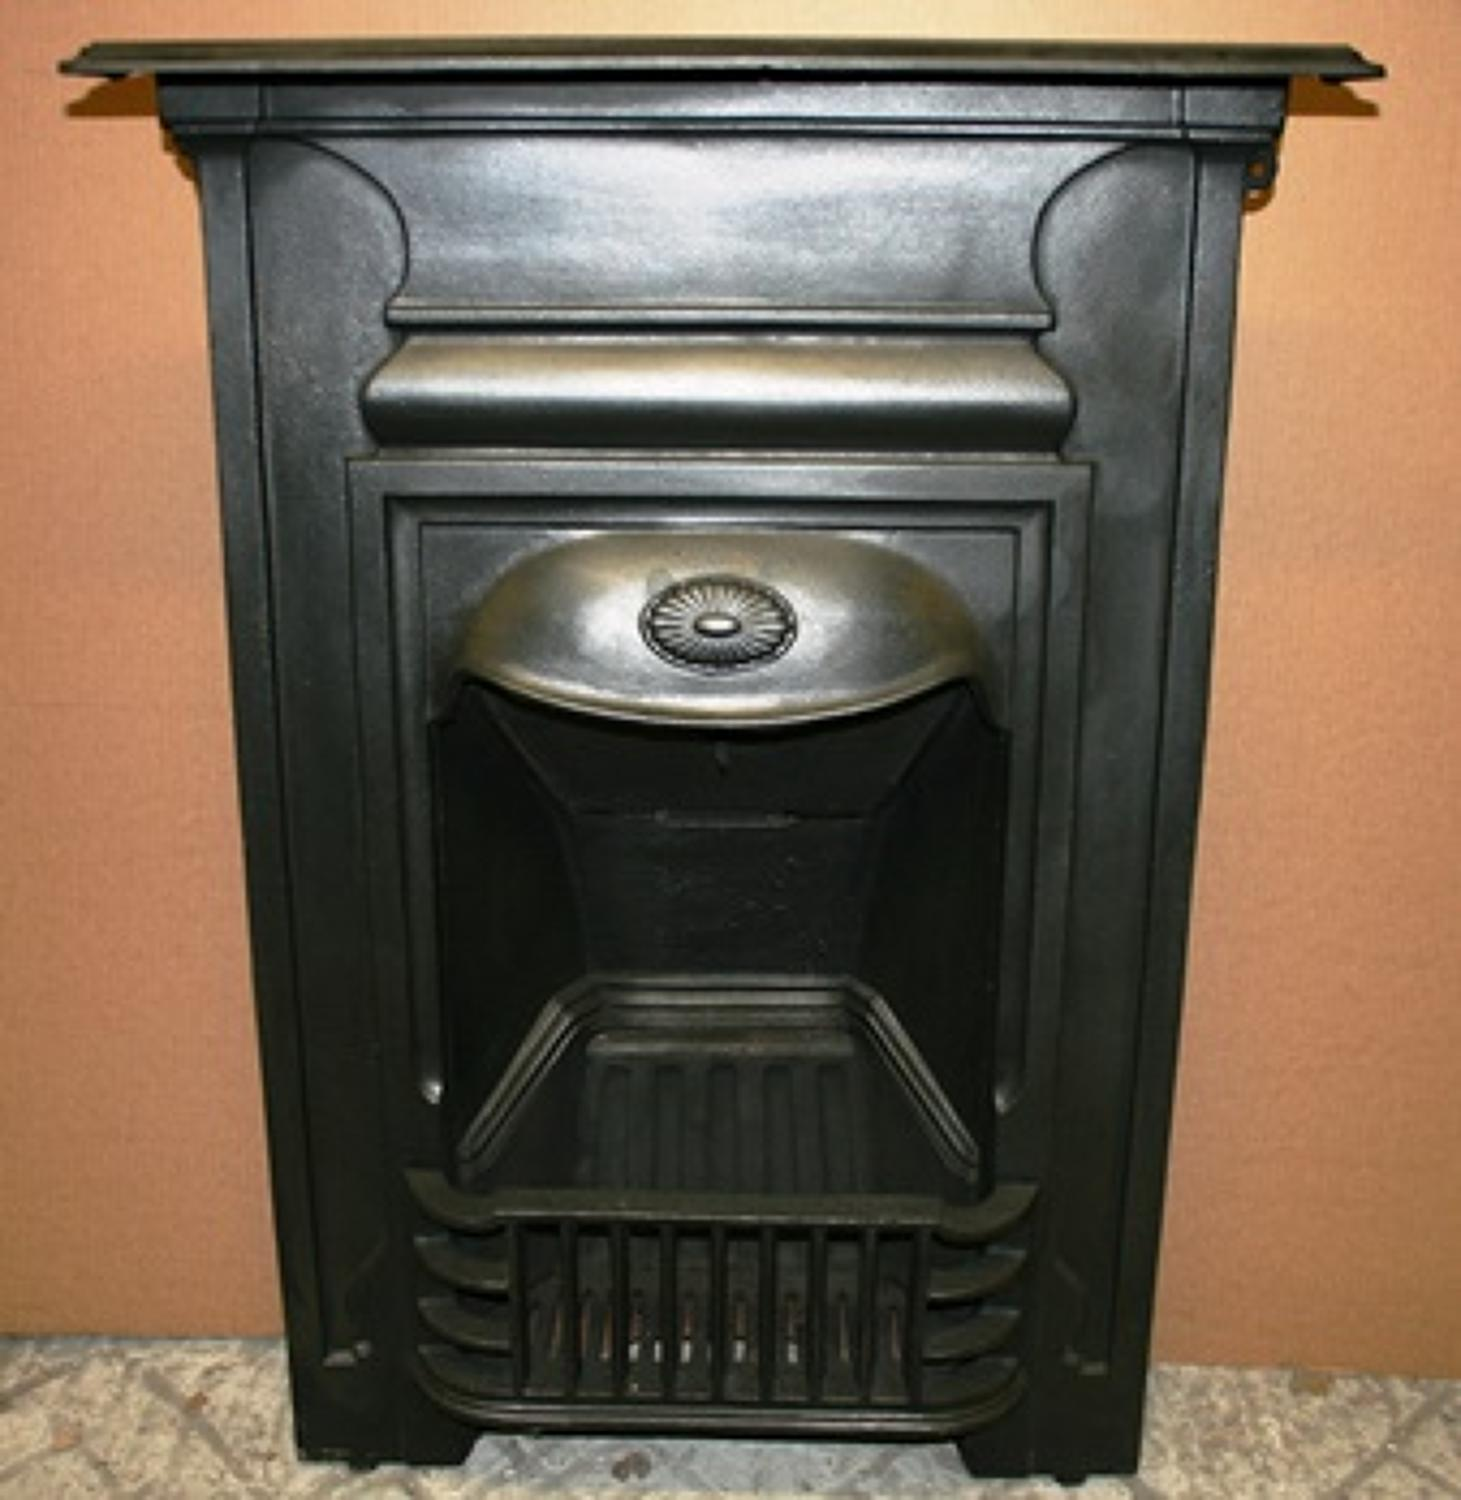 FC0009 A Cast Iron Combination Fireplace in Excellent Condition